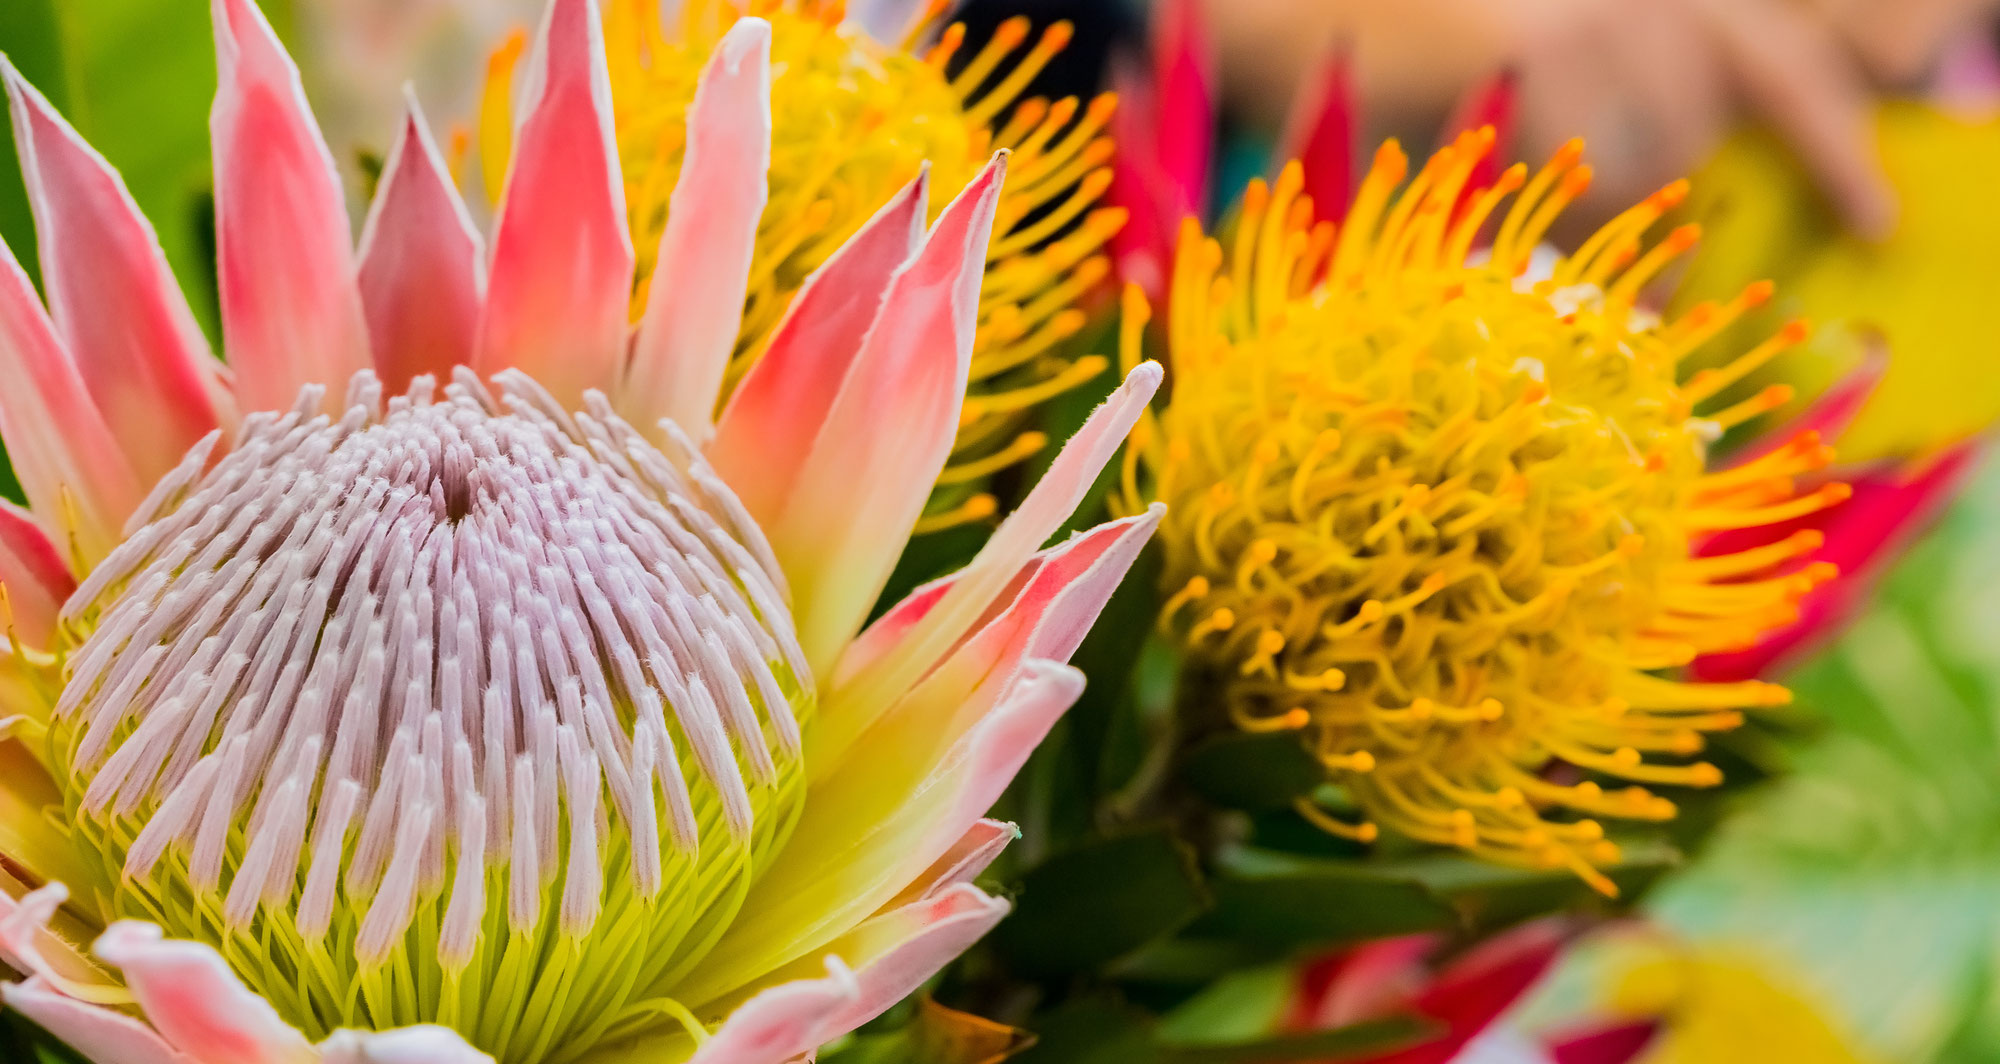 Protea Cynaroides: the symbolic flower of South Africa